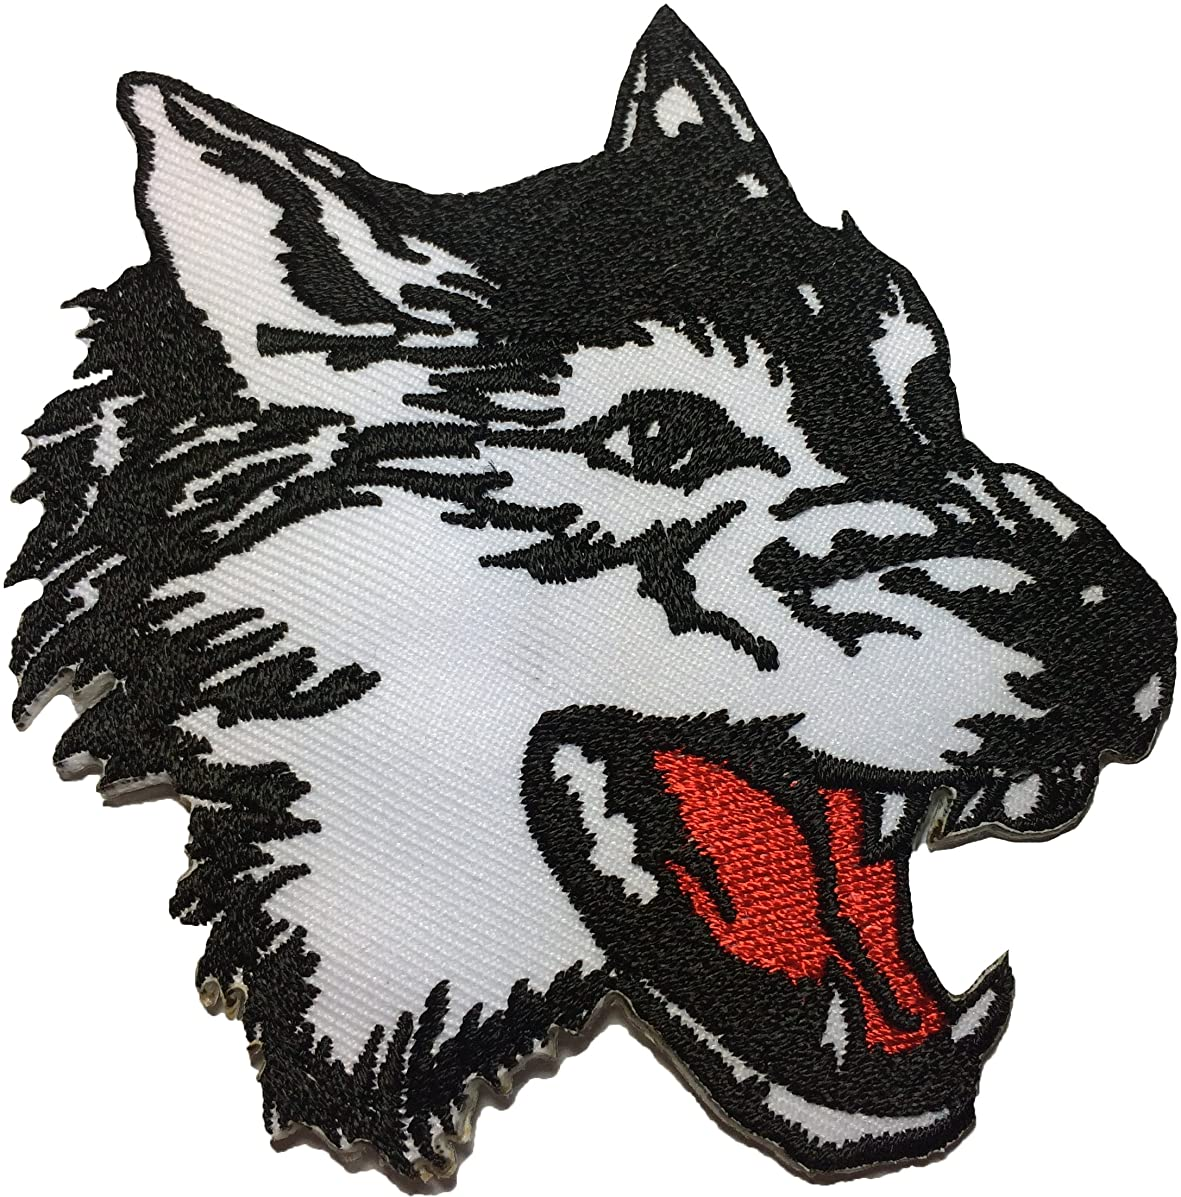 Papapatch Wolf Fox Roaring Head Face Animal Wild DIY Sewing on Iron on Embroidered Applique Patch (IRON-WOLF-HEAD-ROAR)